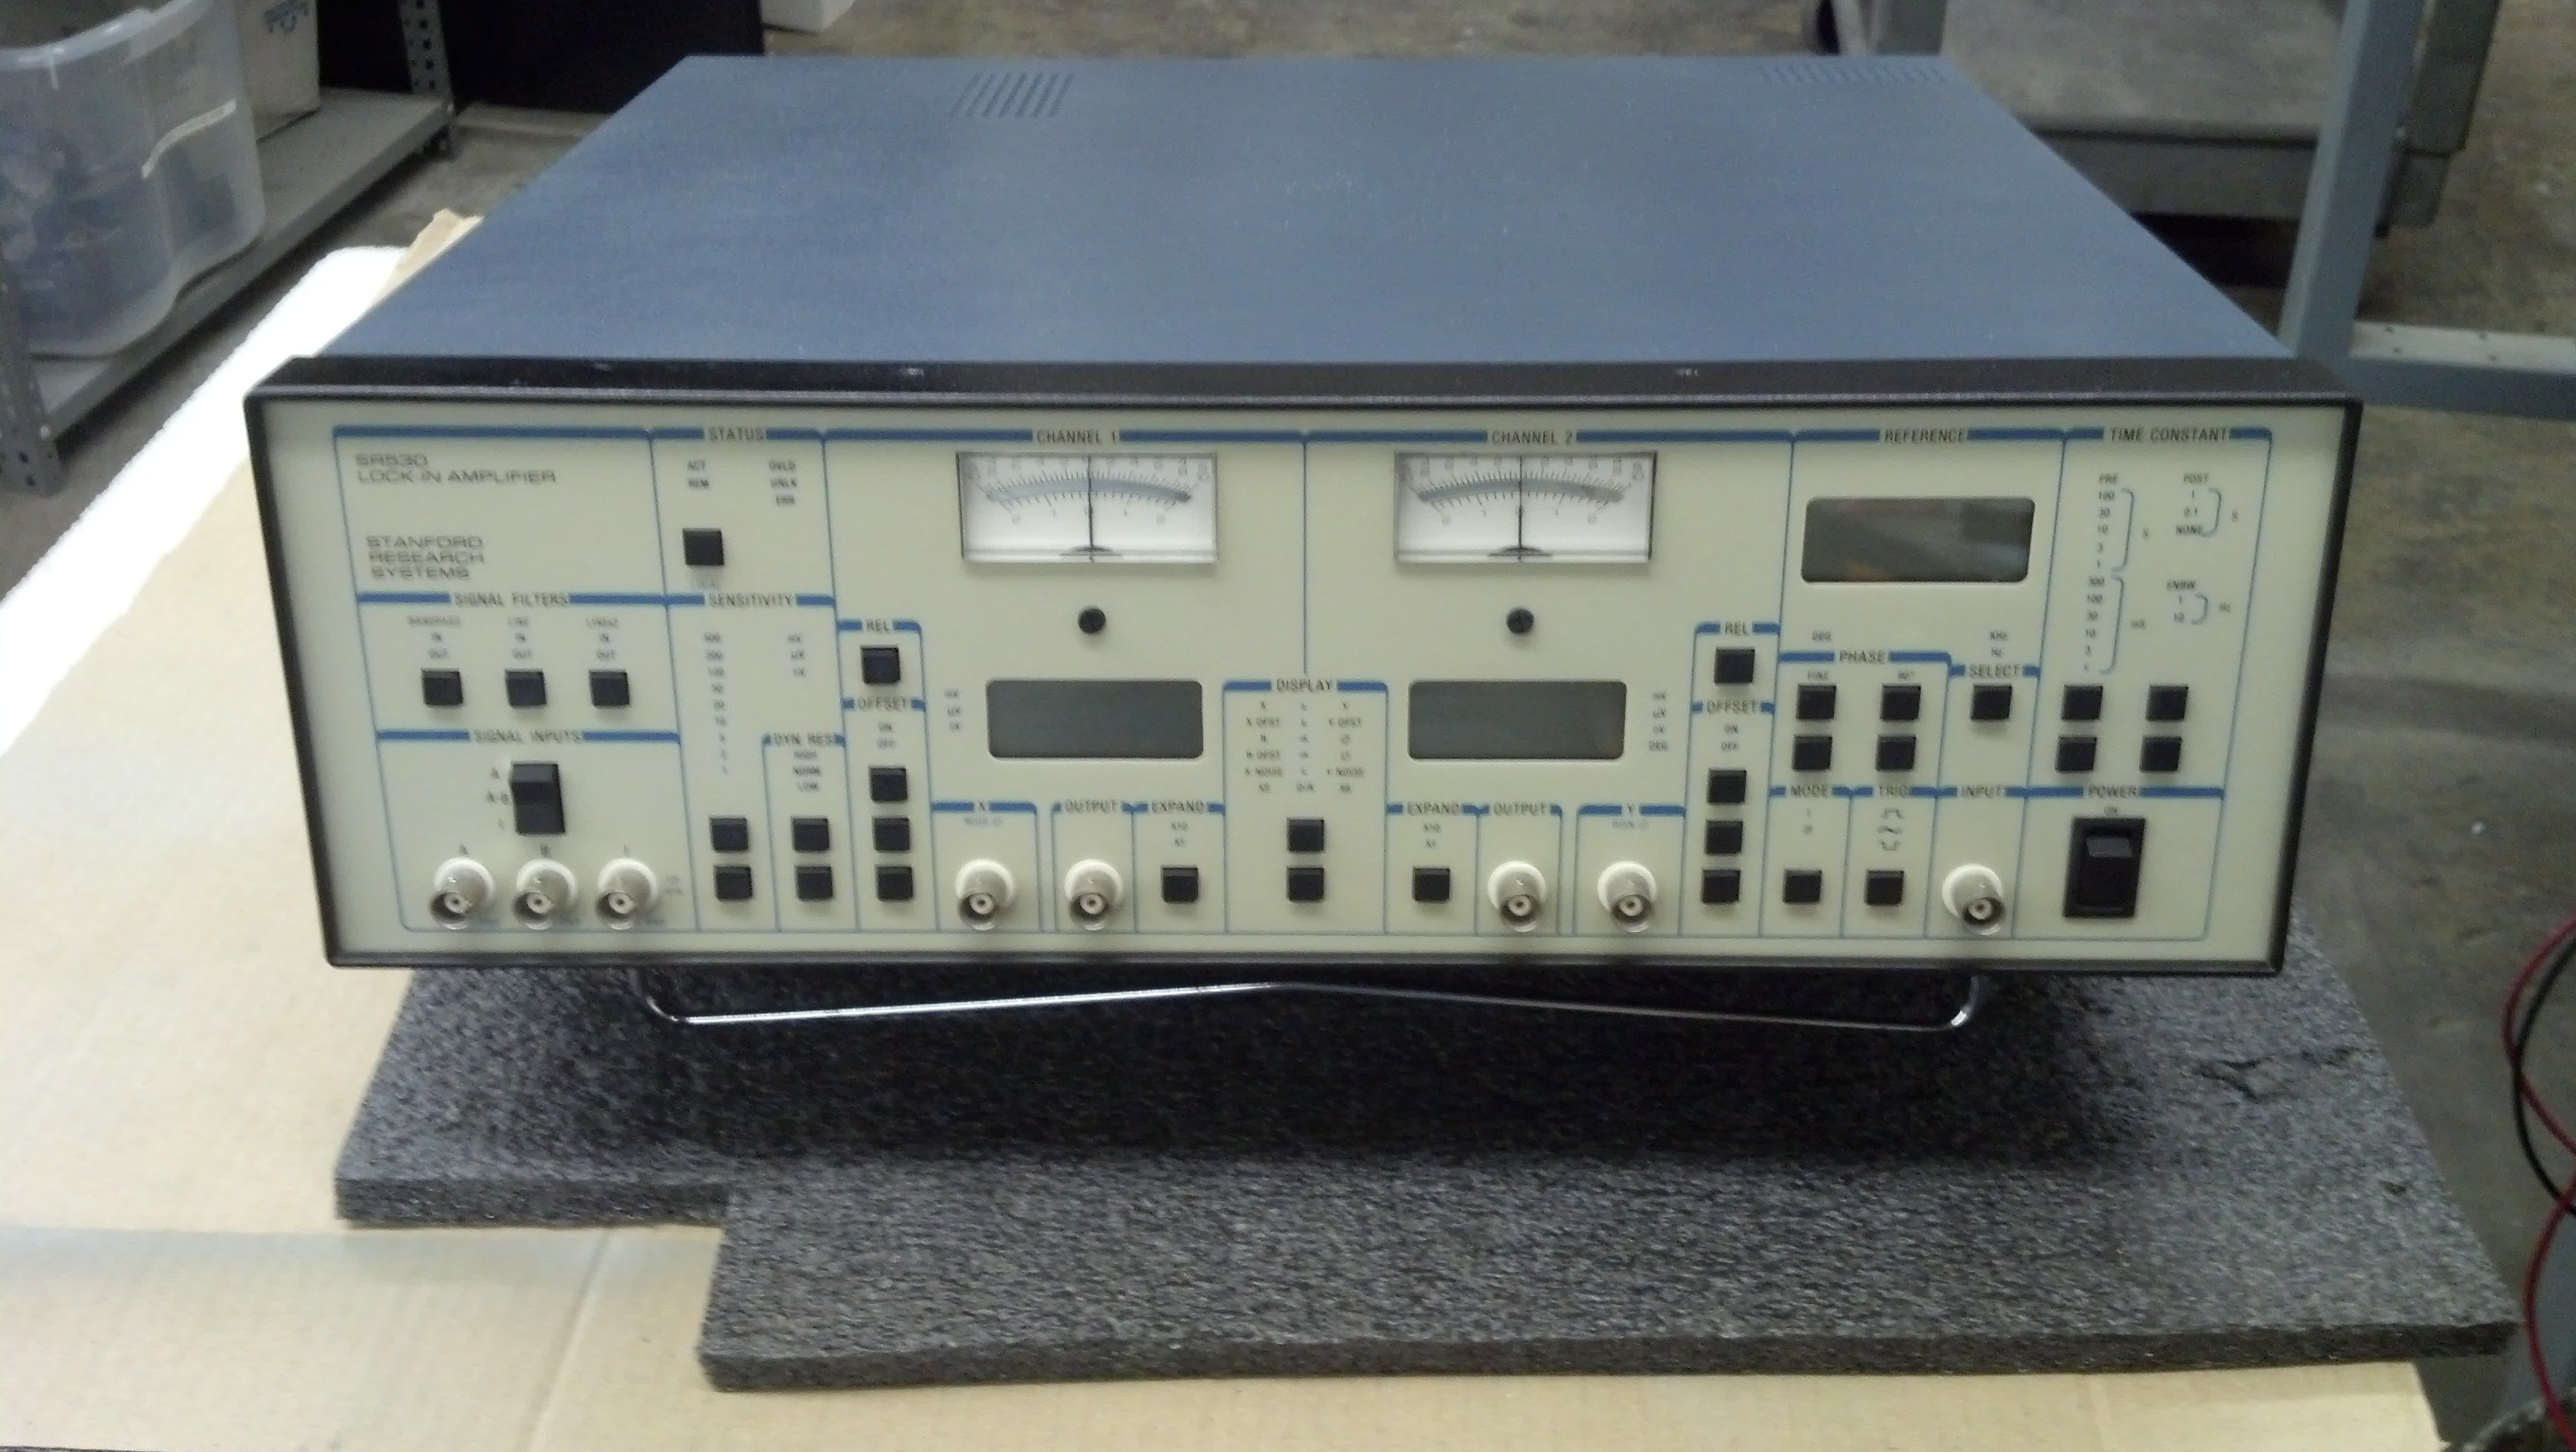 Stanford Research Systems Srs Sr530 Dual Phase Lock In Amplifier Lockin Amplifierj 5hz To 100 Khz